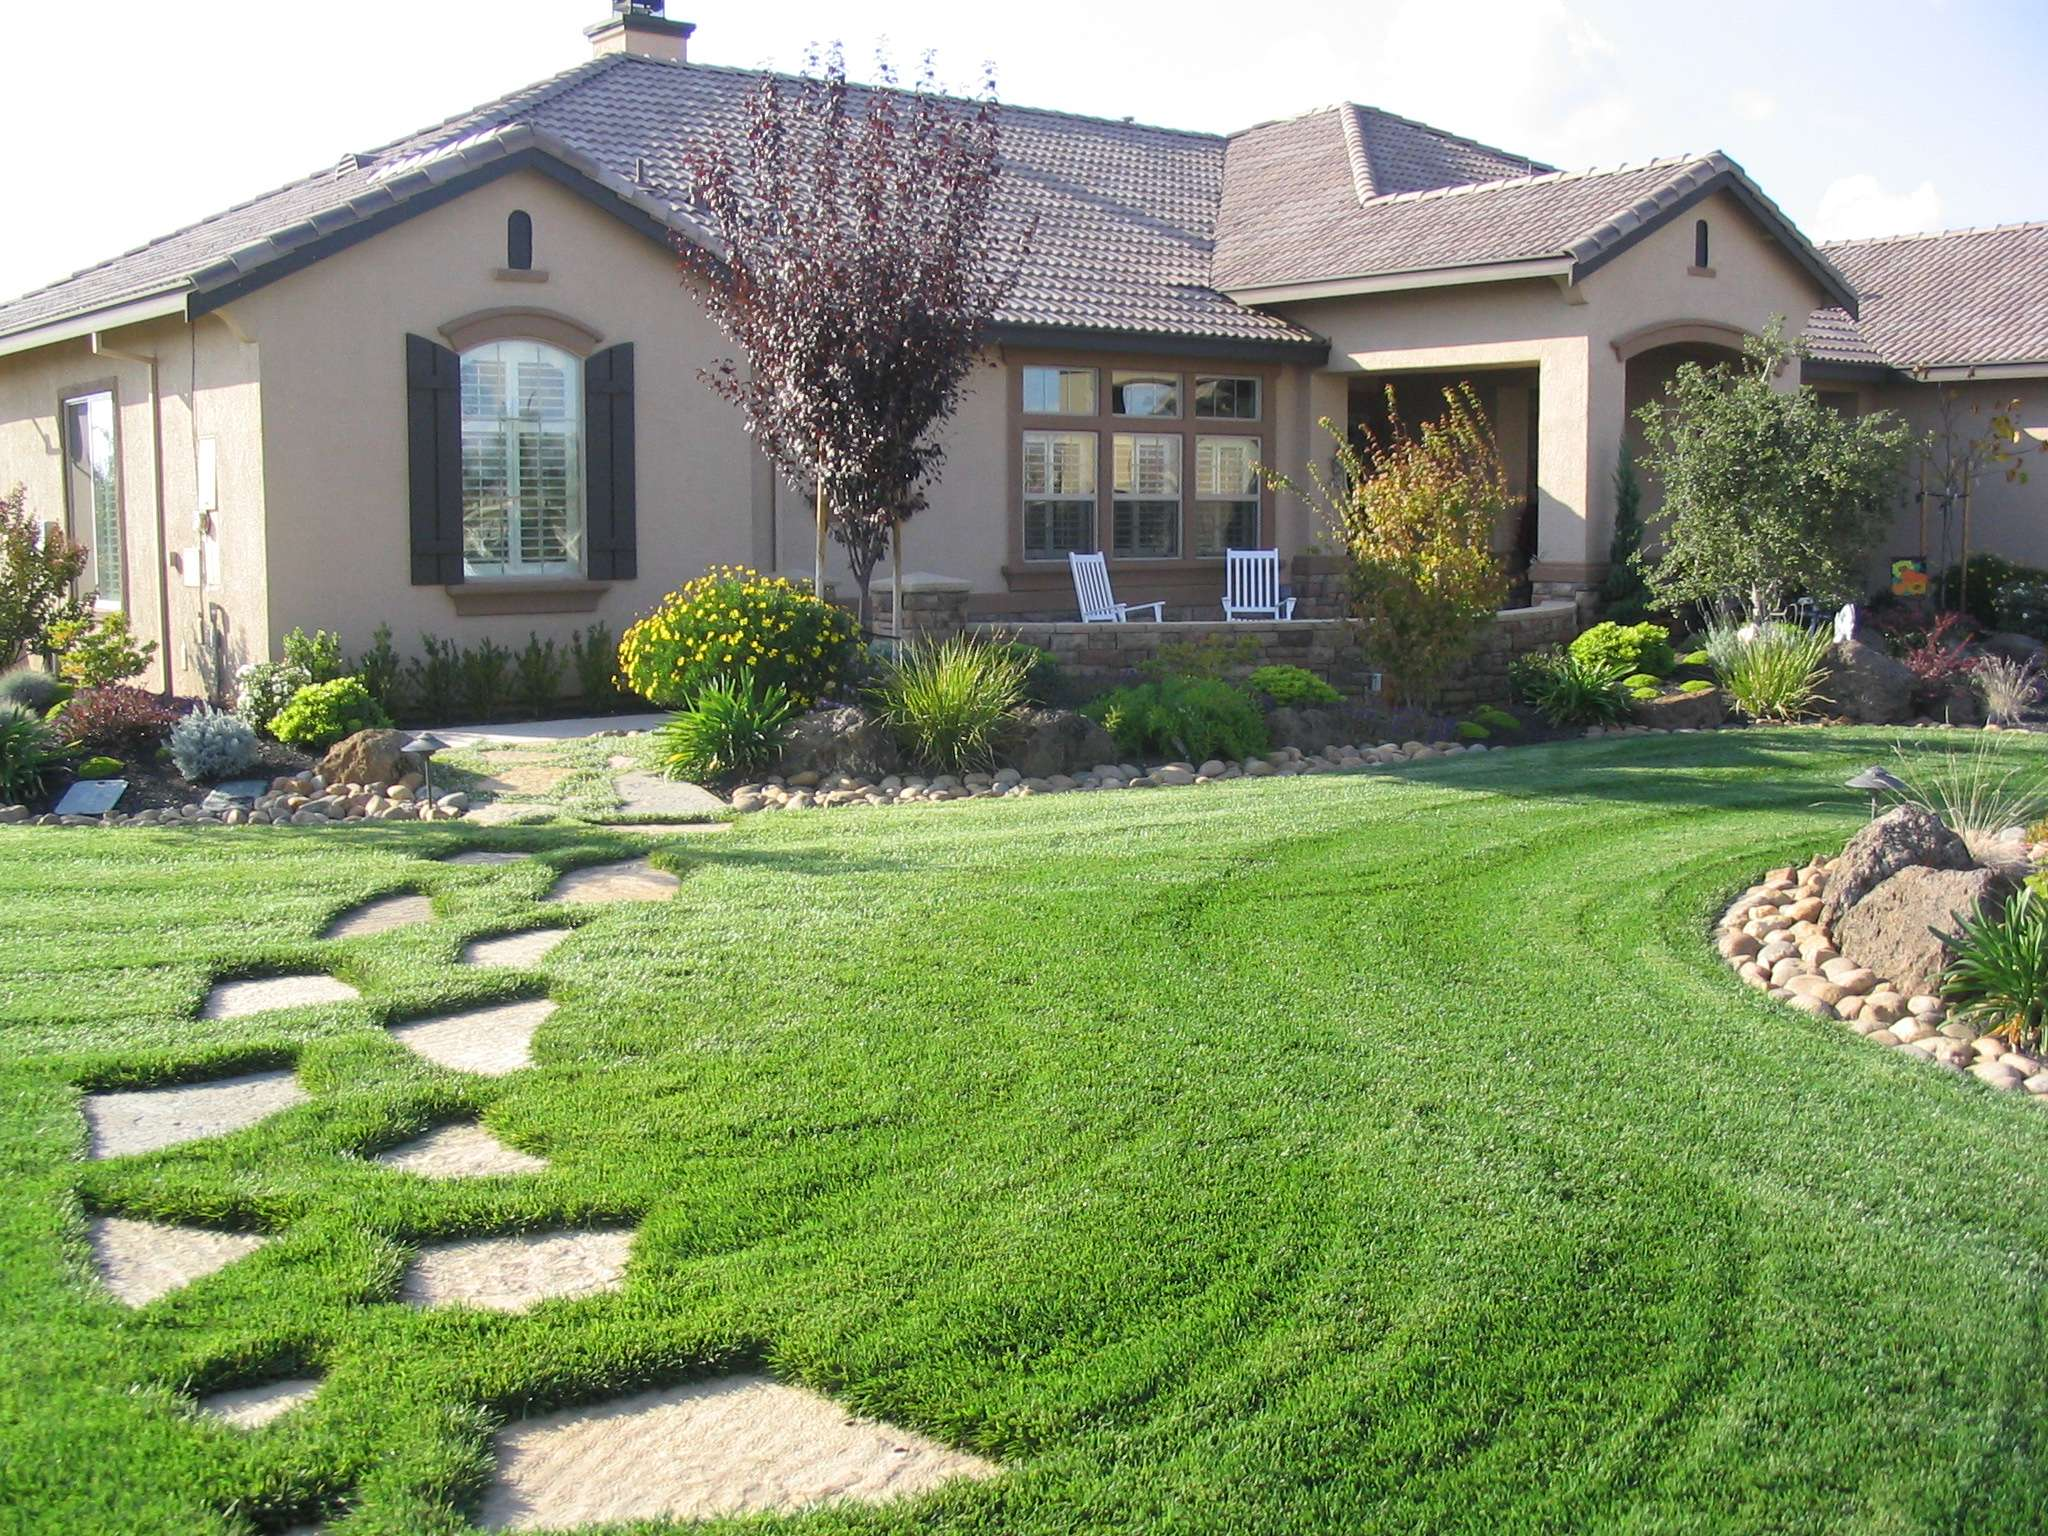 Green Landscape Ideas Ranch Style Homes Exterior Area